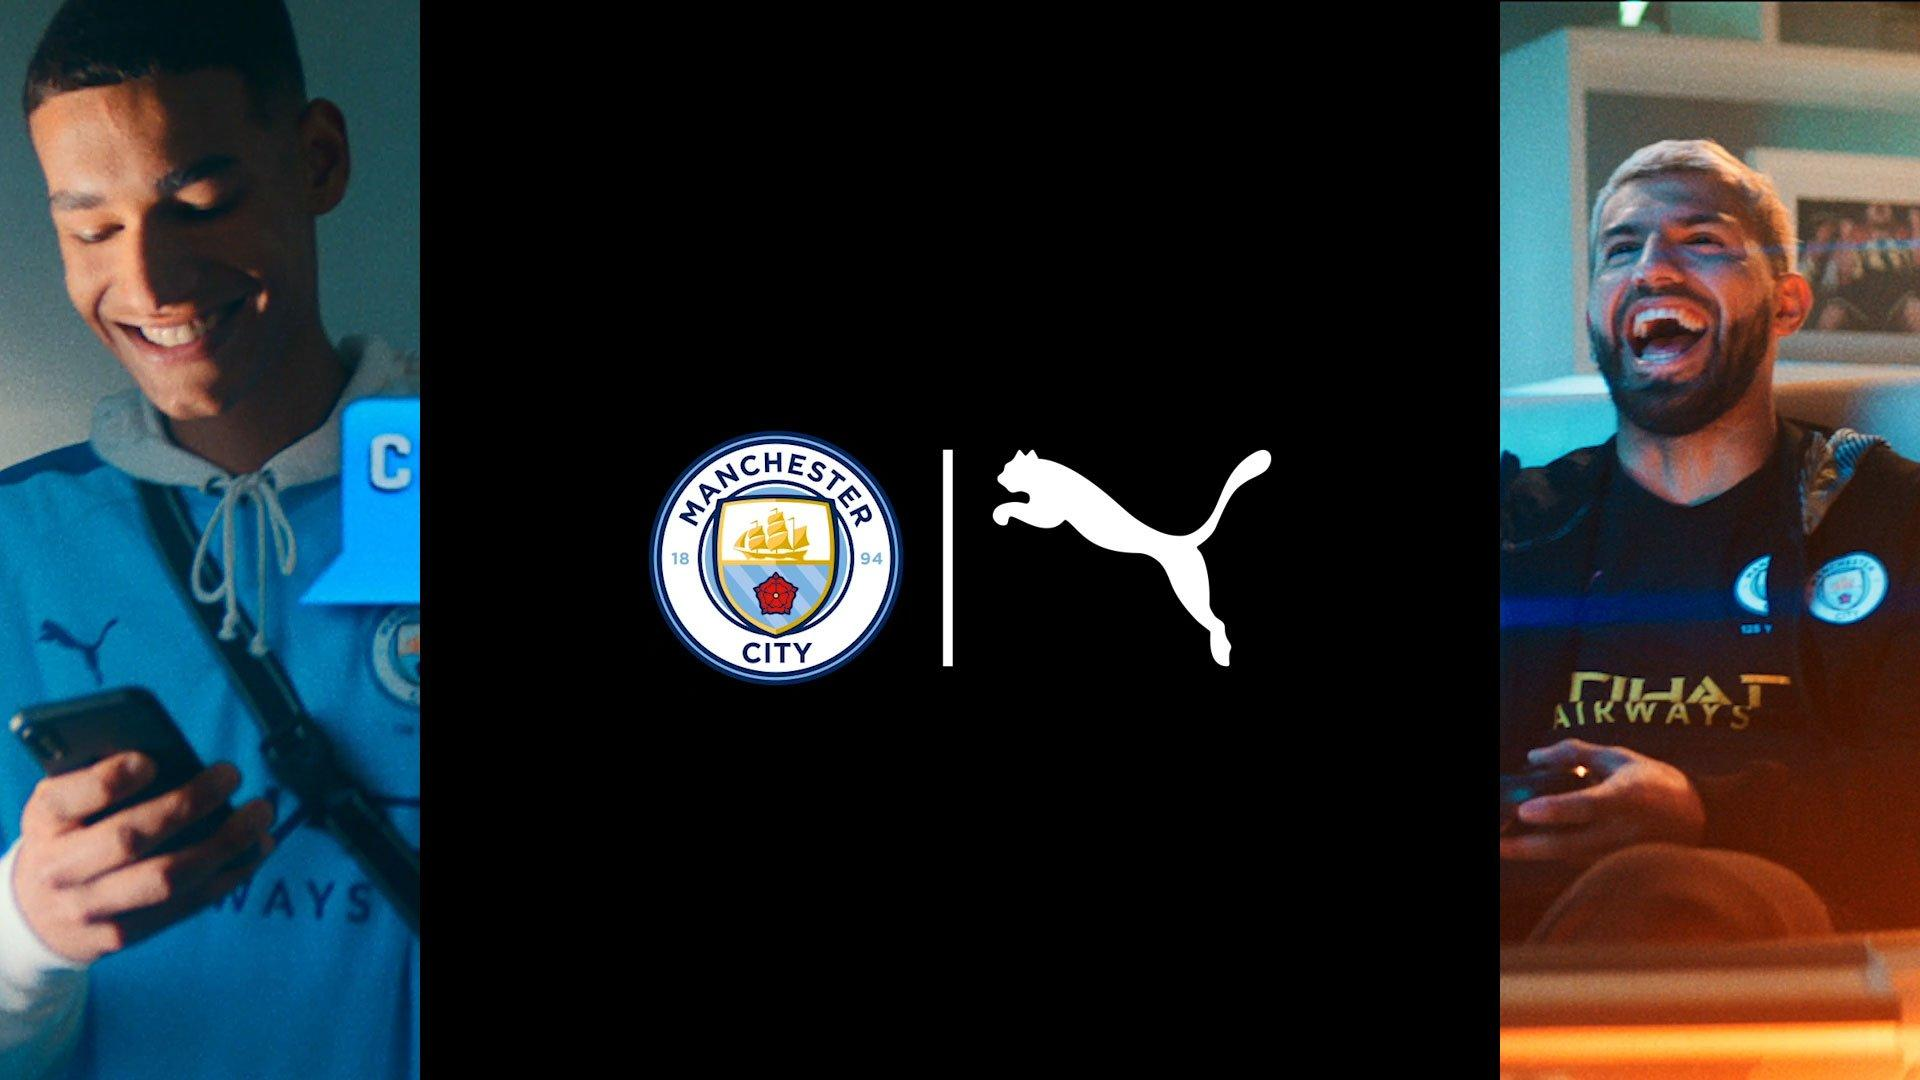 Manchester City Players Wallpapers Top Free Manchester City Players Backgrounds Wallpaperaccess